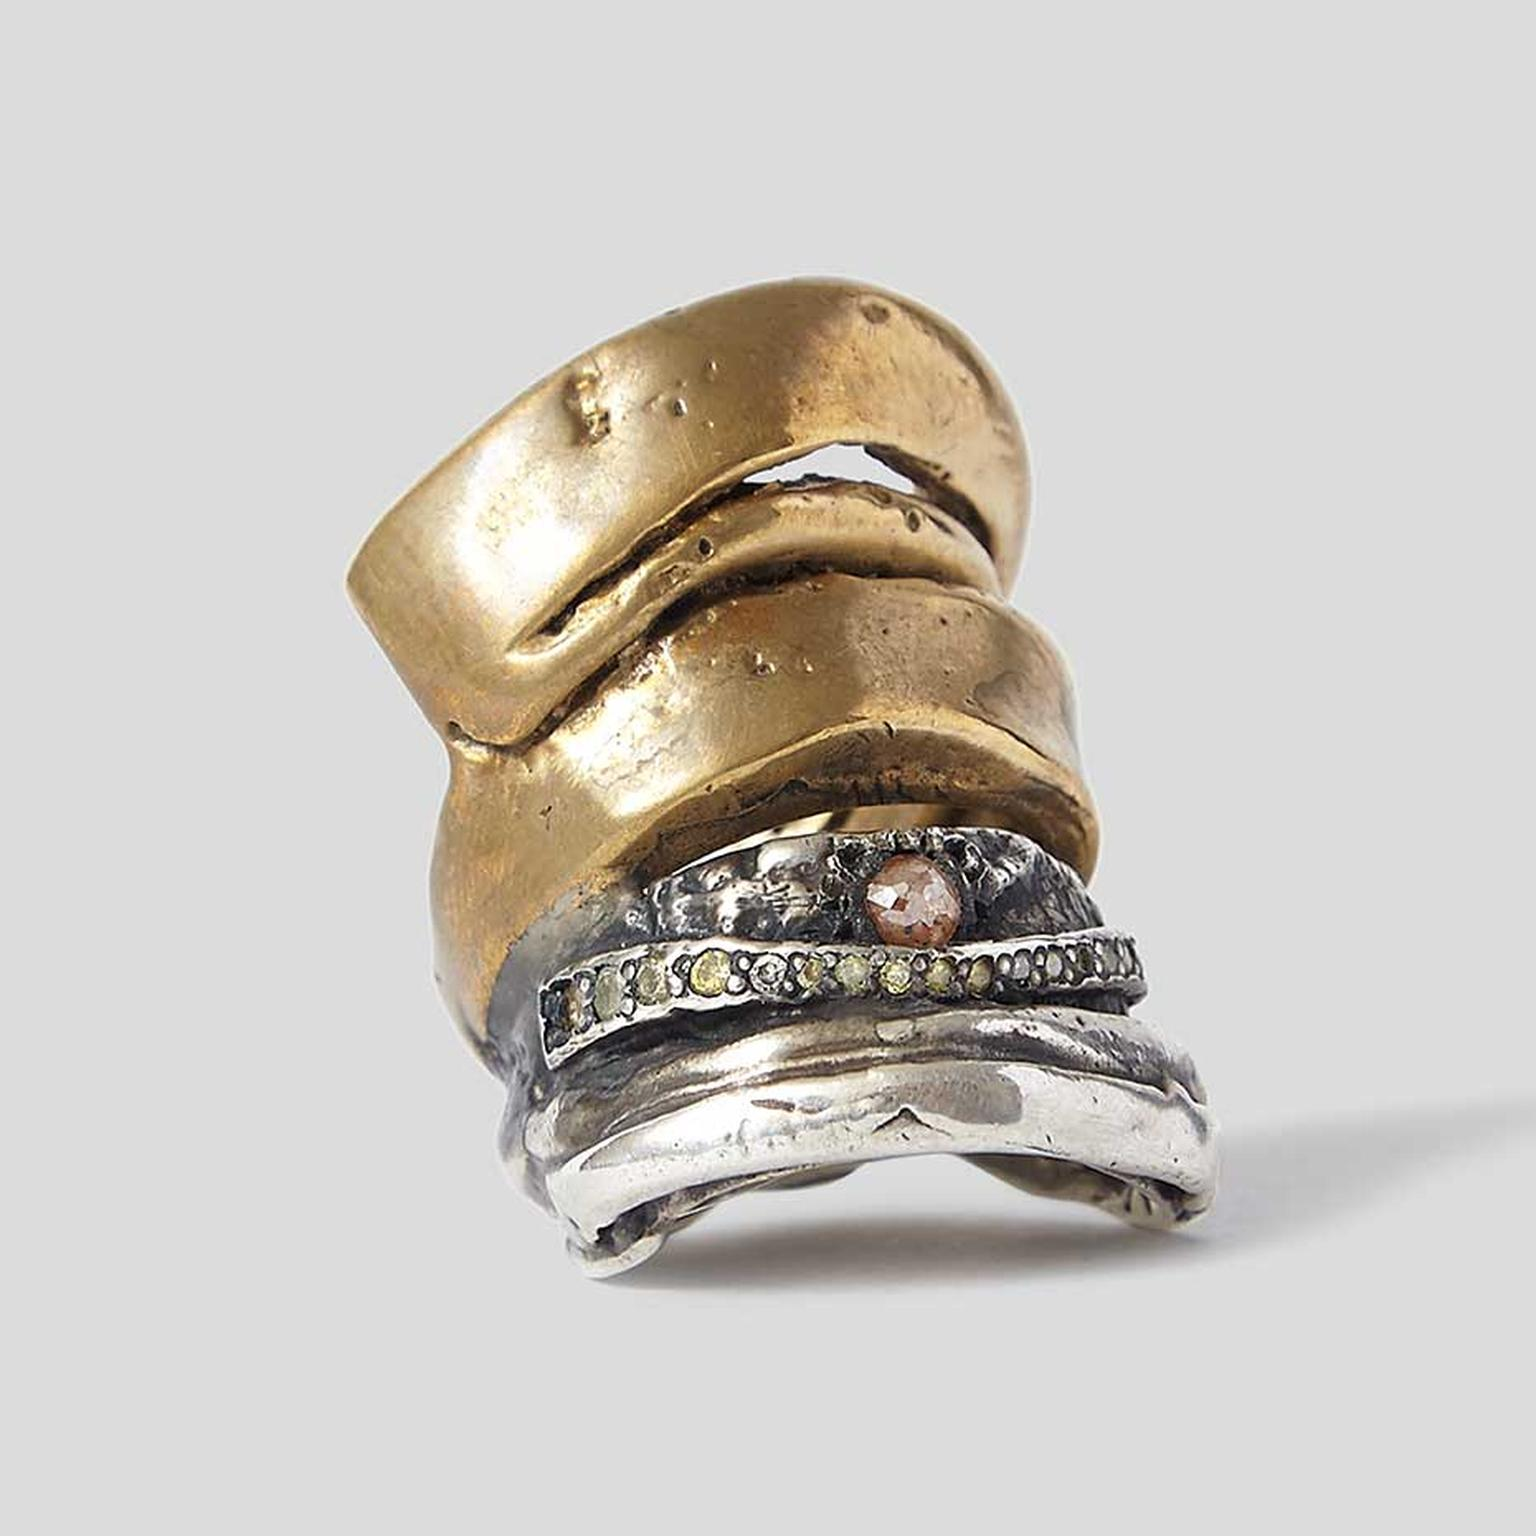 Michelle Lamy and Loree Rodkin Hunrod ring in silver, brass and black rhodium, set with a rose-cut orange diamond and 20 multi-coloured diamonds. Available exclusively from Dover Street Market.